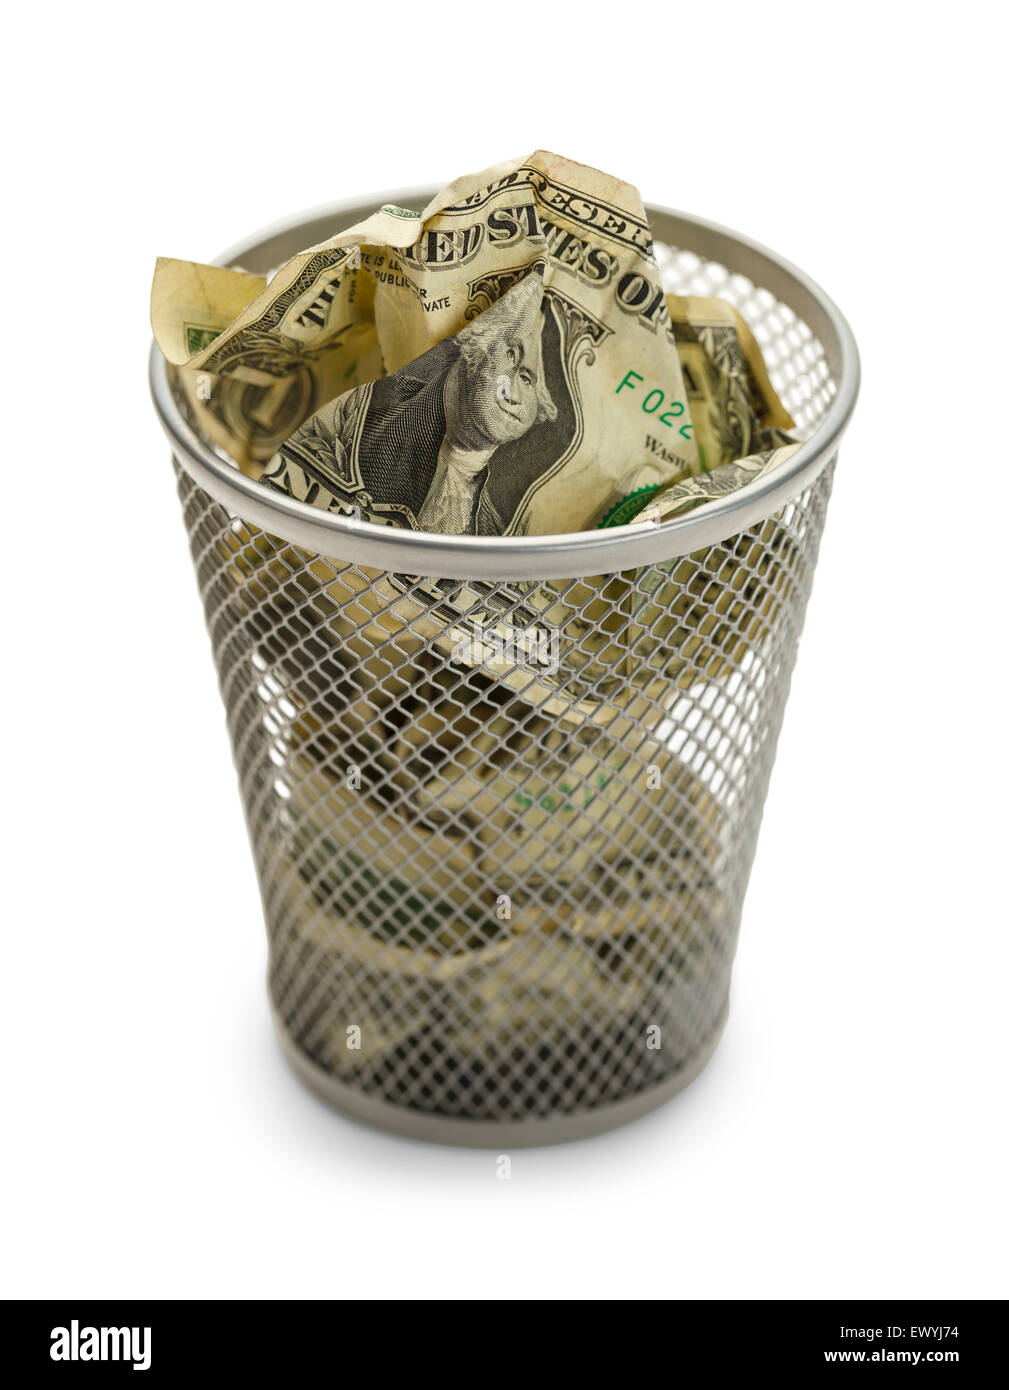 Waste Basket Full of Money Isolated on White Background. - Stock Image